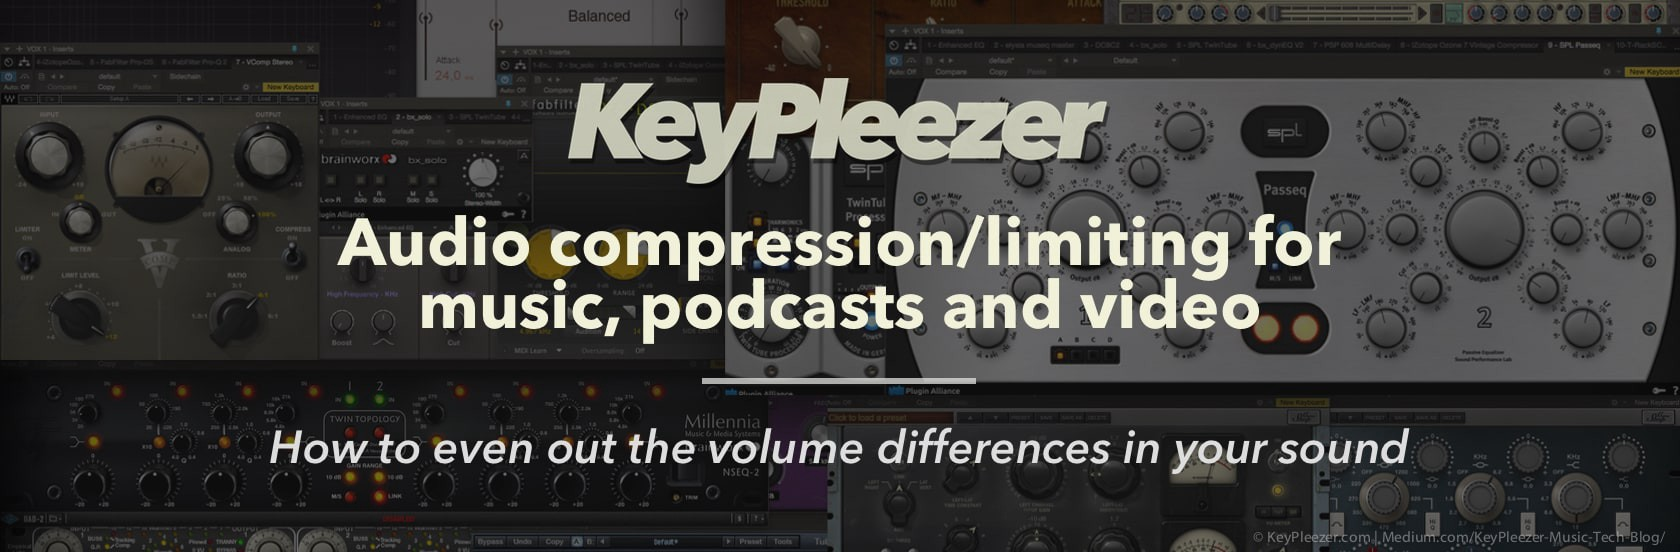 How to use an audio compressor or limiter in music, podcasts